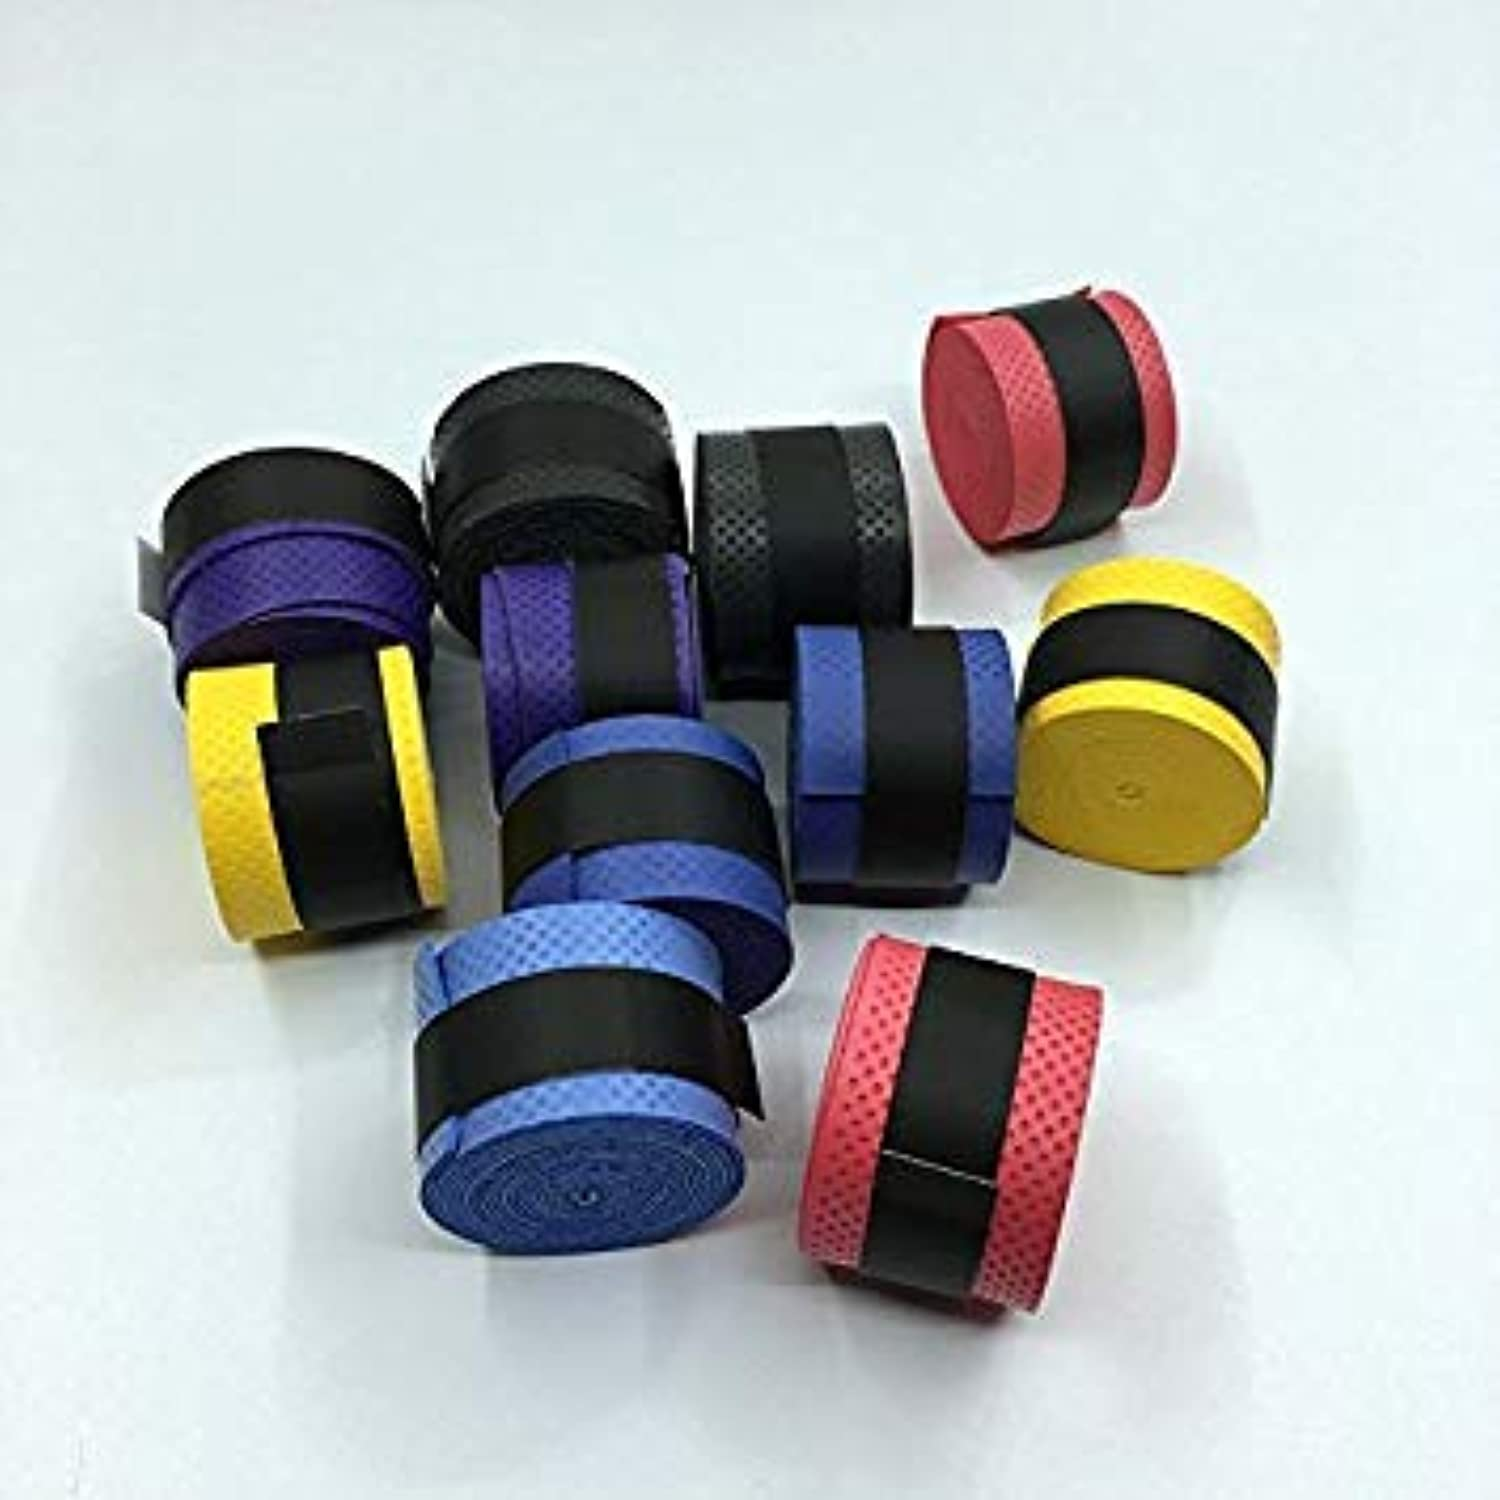 60Pcs (Assorted colors) Dry Feel Pressure Point Badminton Racket Over Grip,Tennis Overgrips